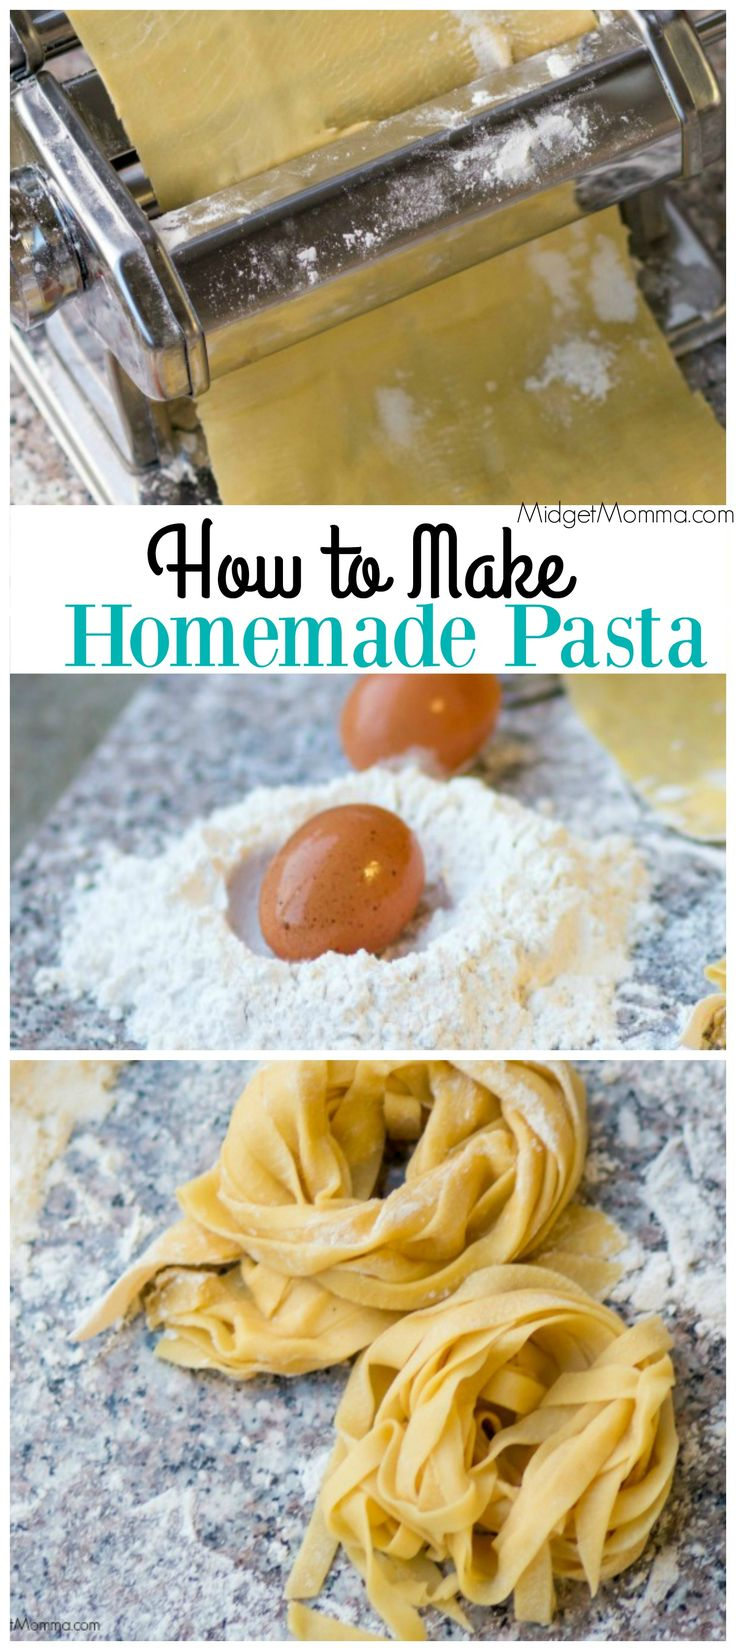 Homemade Pasta. Make fresh pasta right at home with these easy to follow step by step directions on how to make Homemade Pasta.